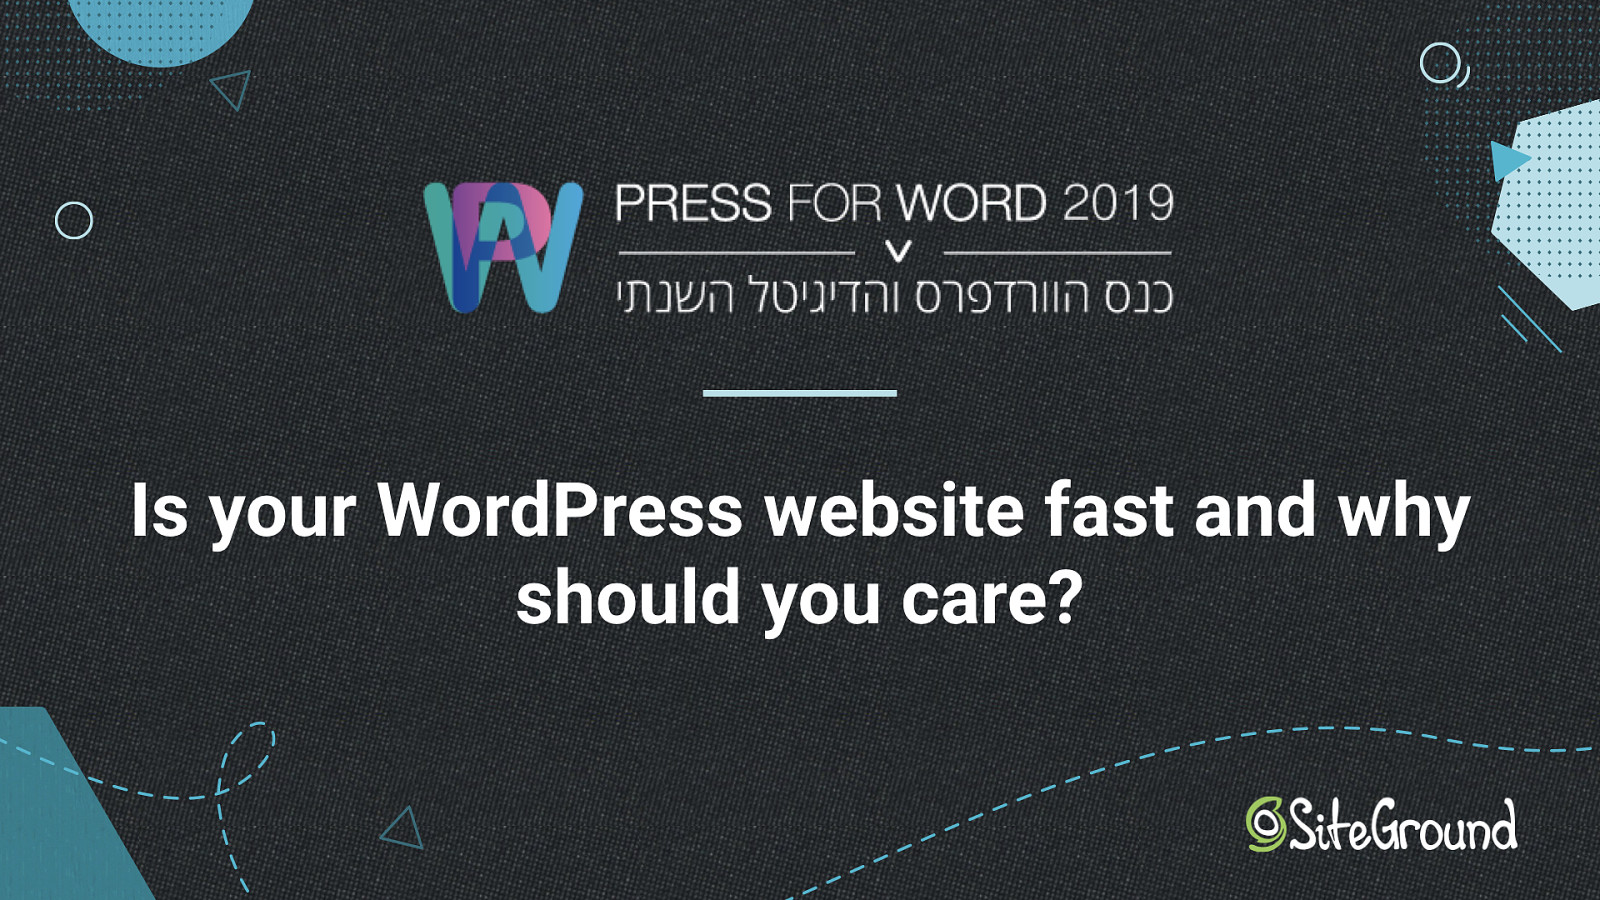 Is your WordPress website fast and why should you care?